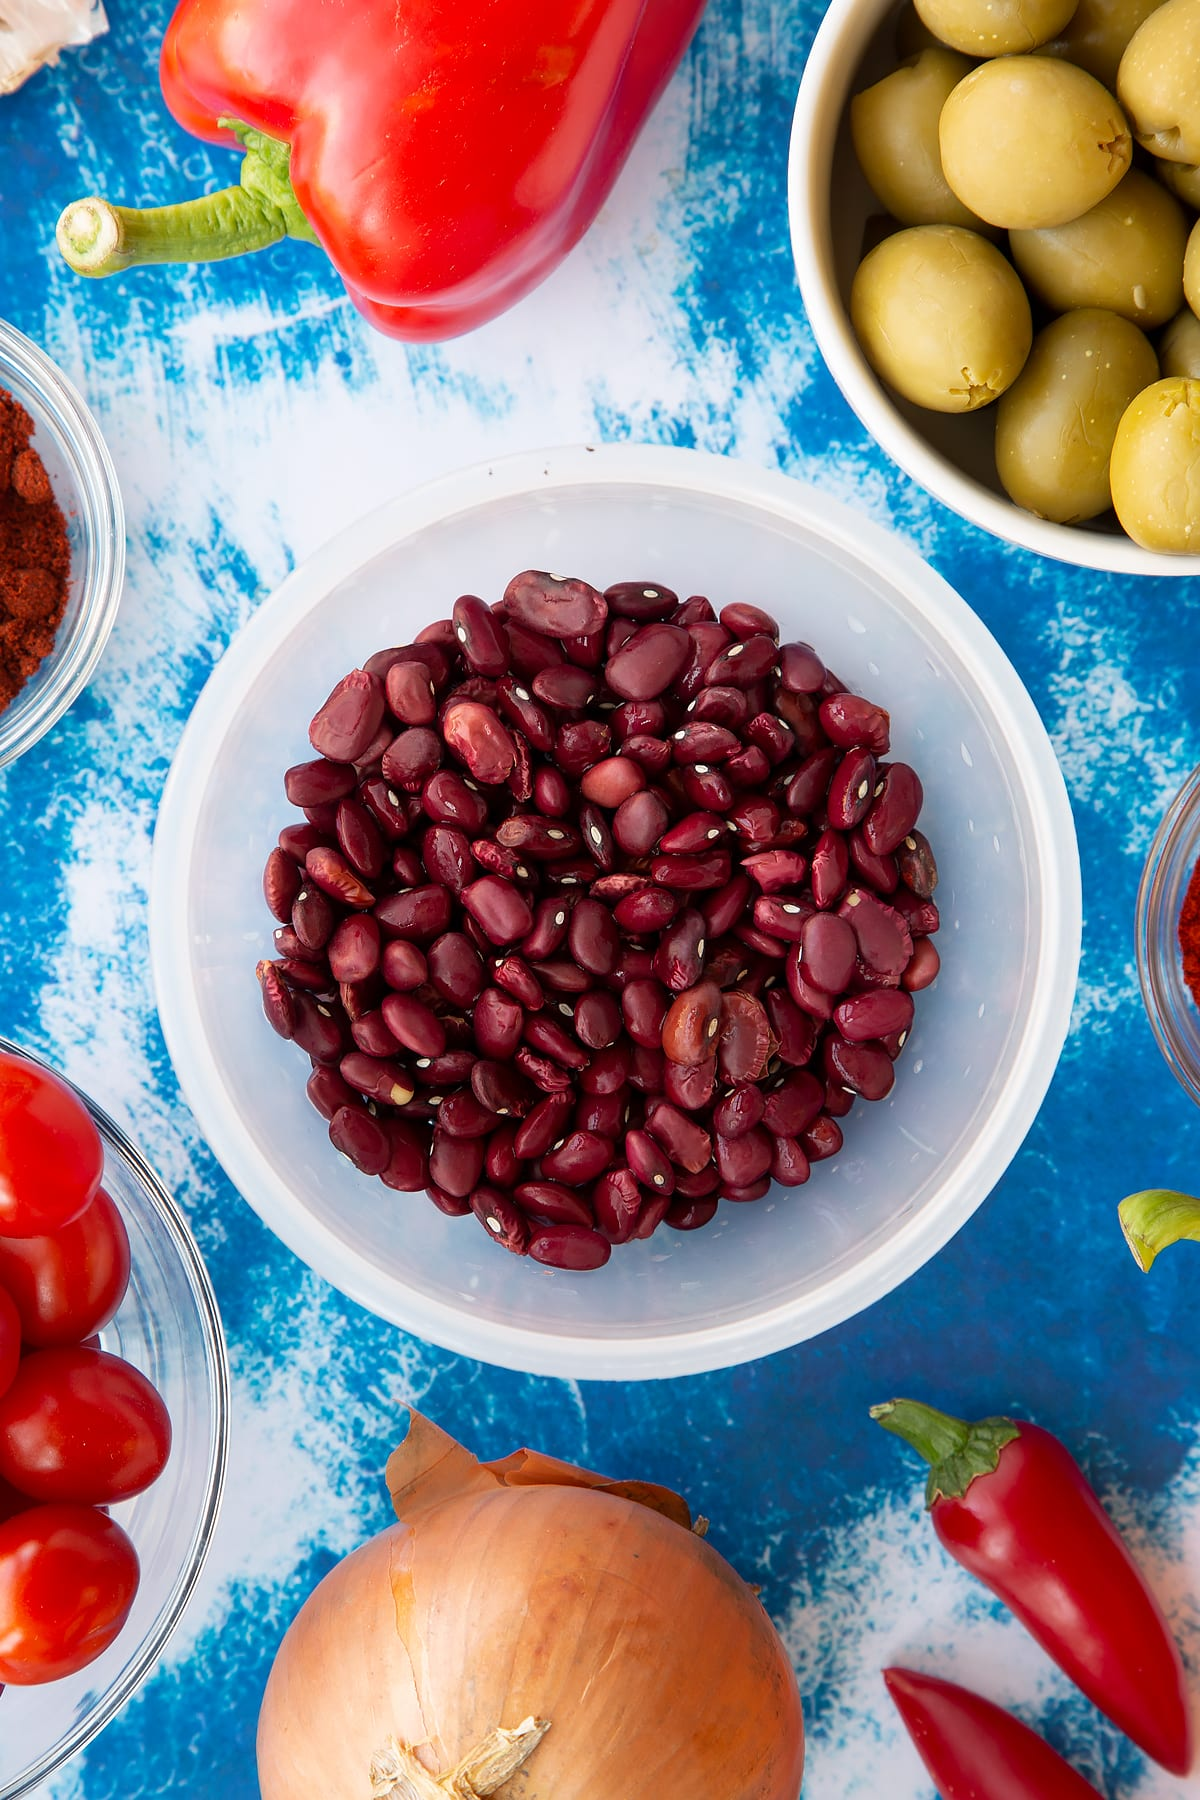 Dried kidney beans in a small pot. Ingredients to make easy Spanish rice and beans surround the pot.